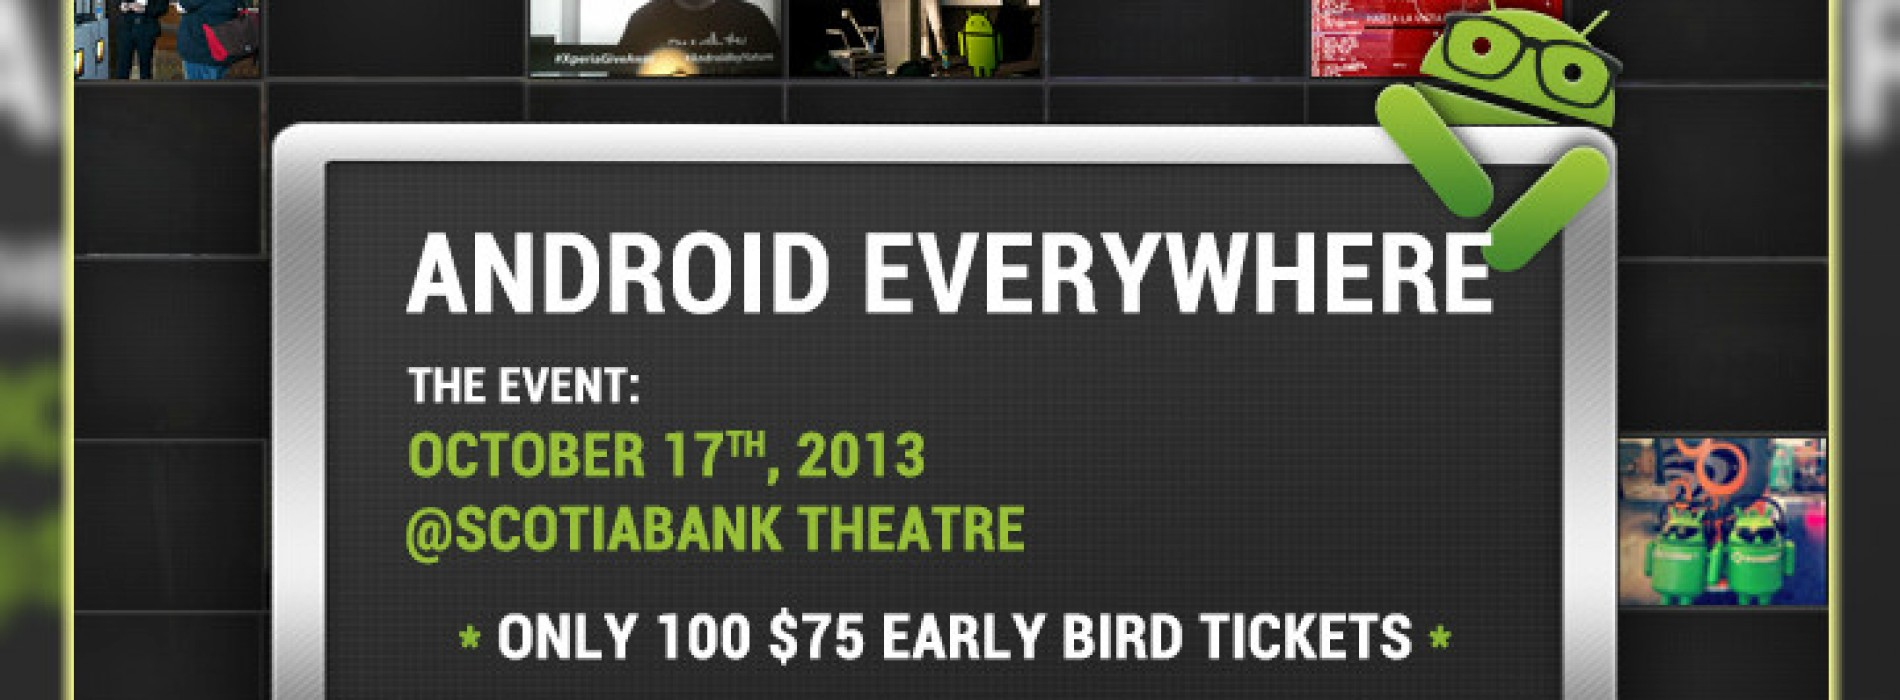 Android Events: AndroidTO returns to Toronto on October 17